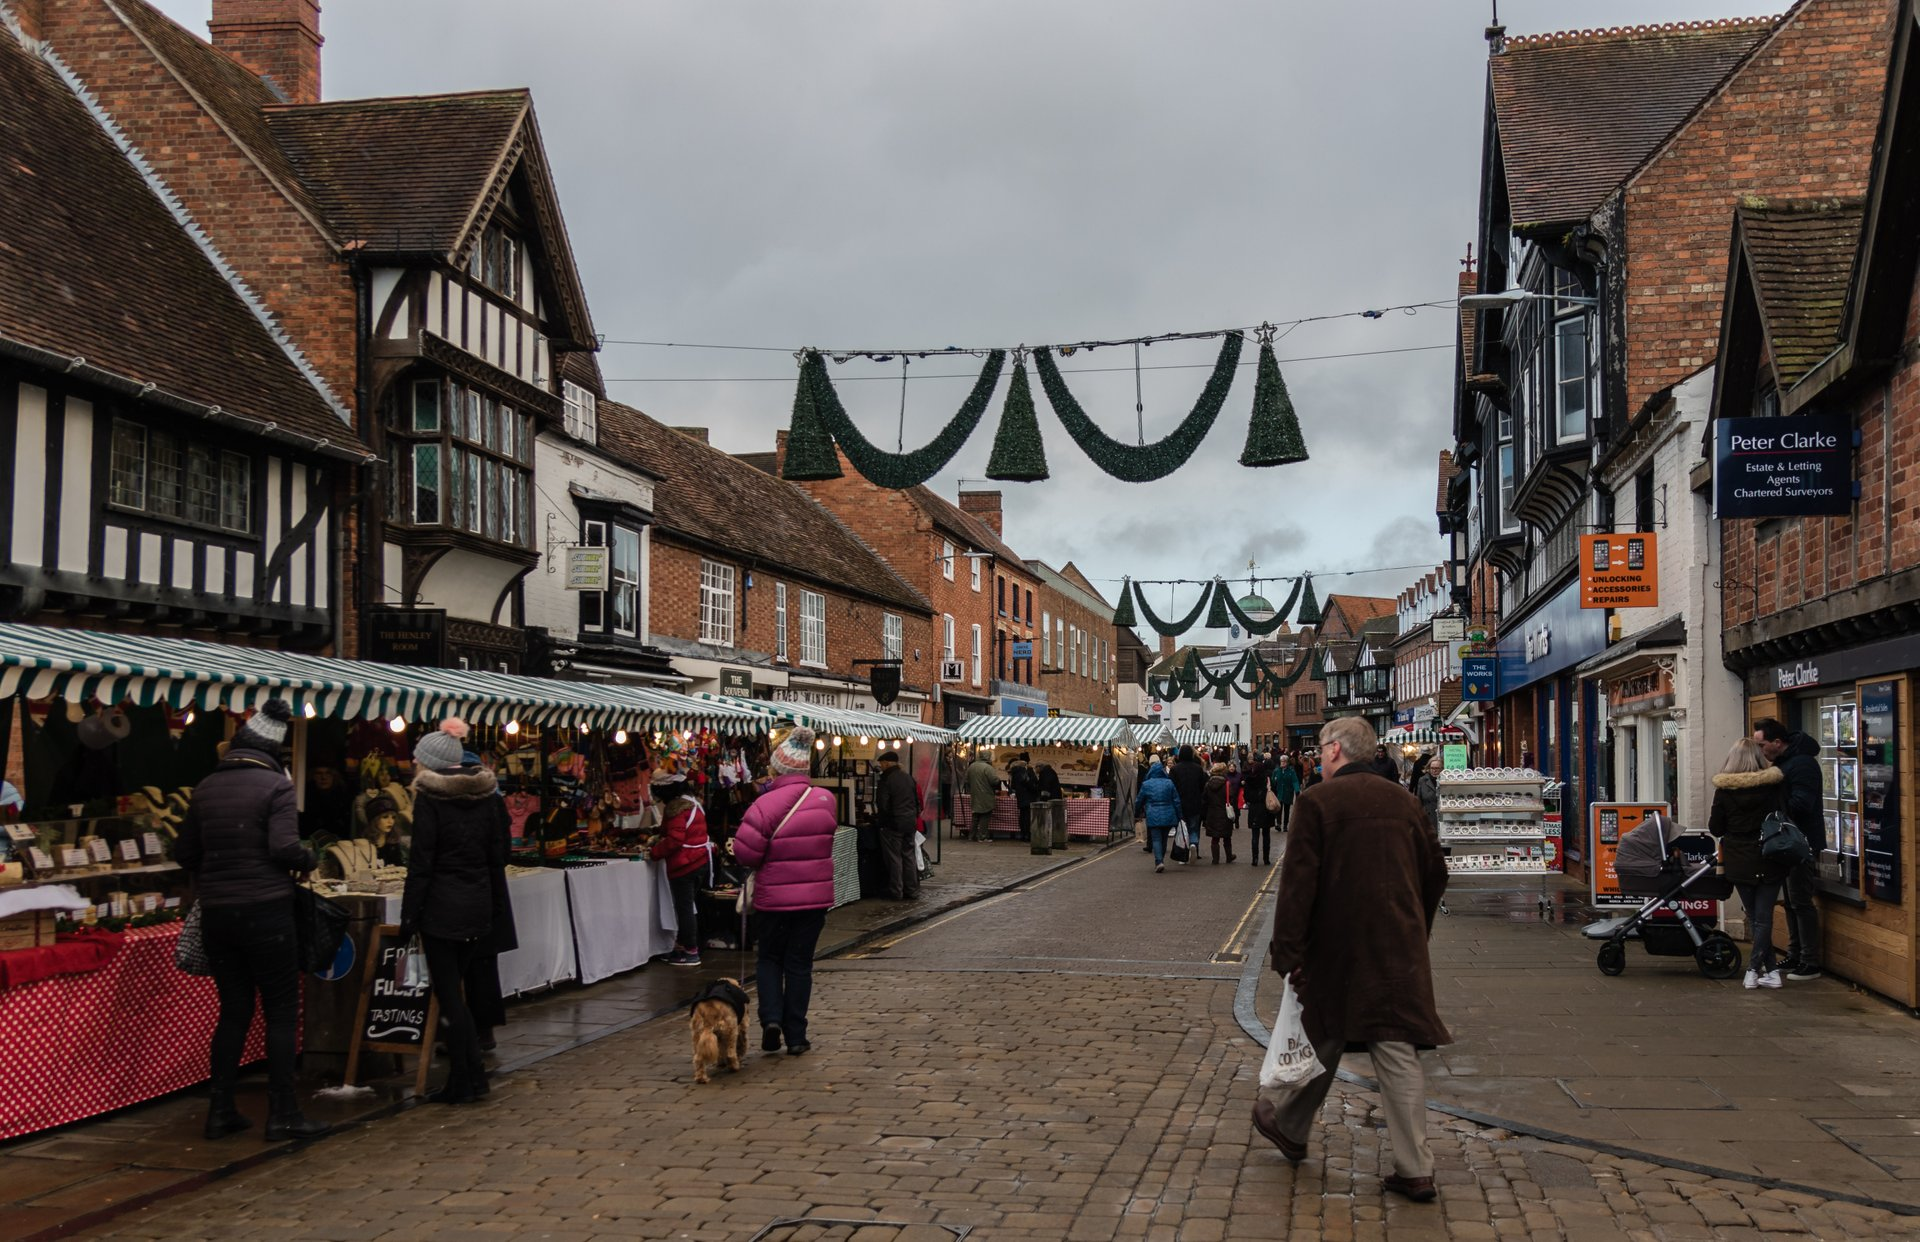 Stratford-upon-Avon Christmas Lights and Victorian Market on Henley Street 2020